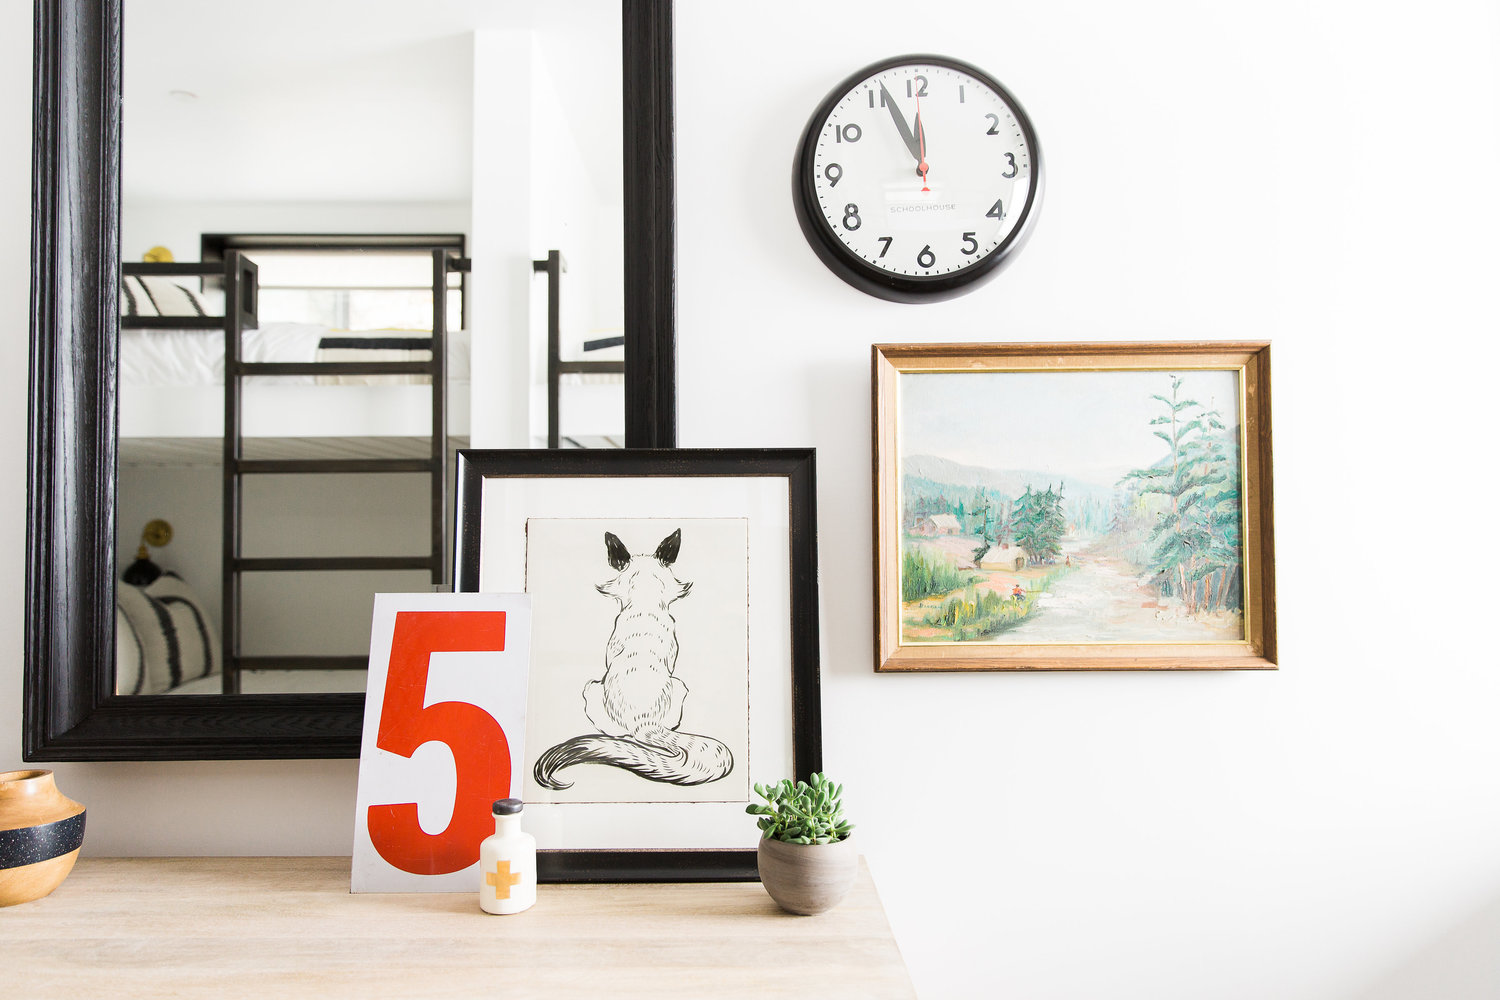 Mirror beside clock and wall art in house